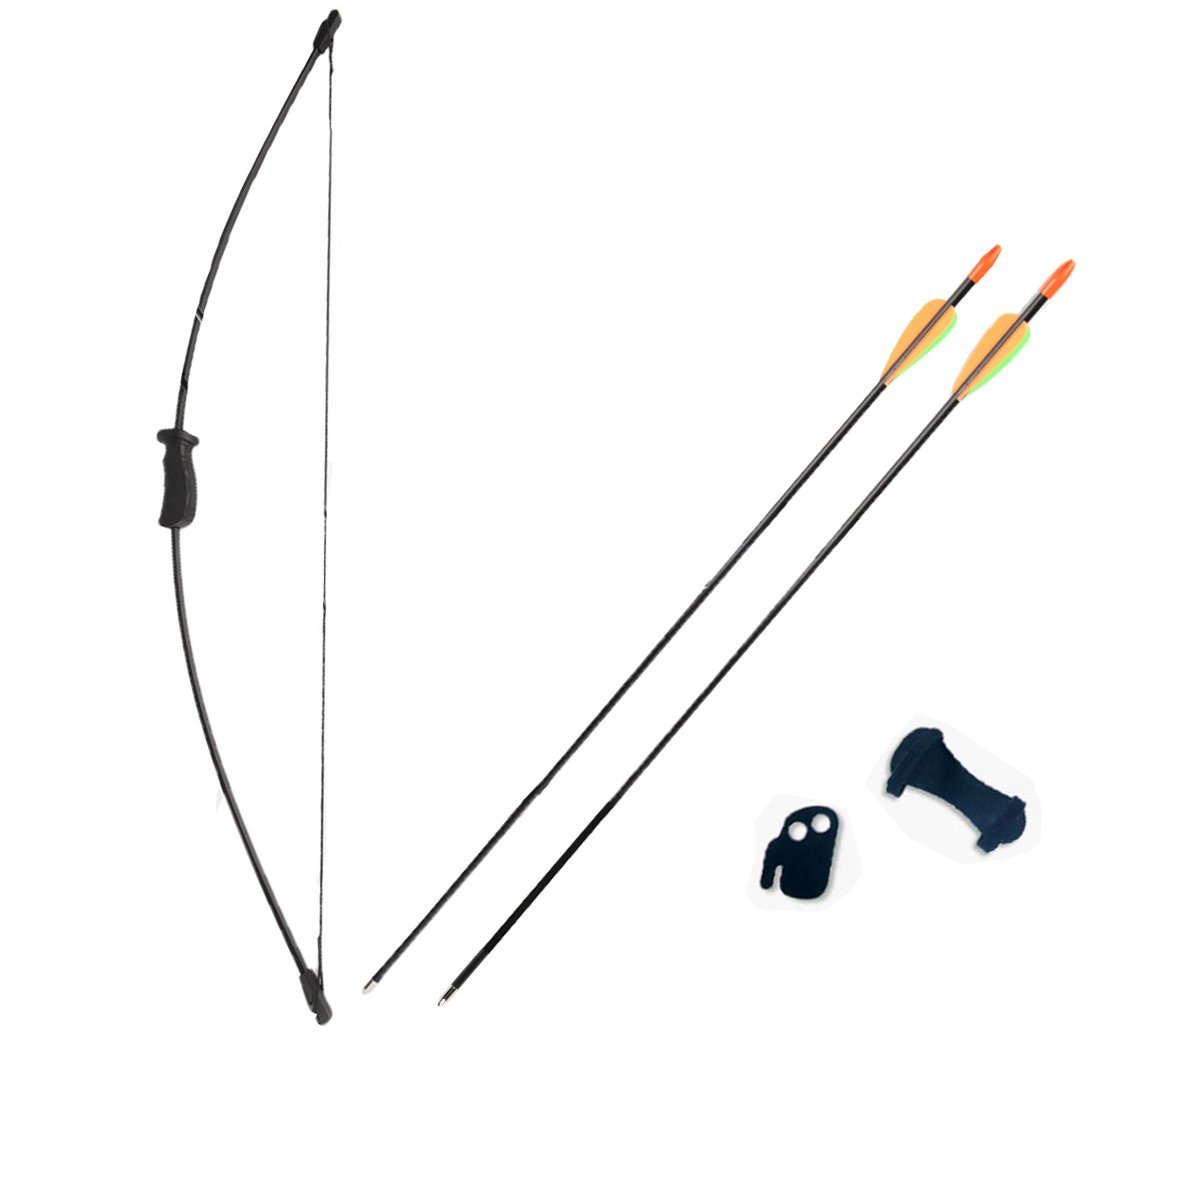 Tauren Boy Scouts Childrens Toys Games Kids Brave Cupid Hawkeye Bow and Arrow Games Set for Hunting Targets for Bow and Arrow